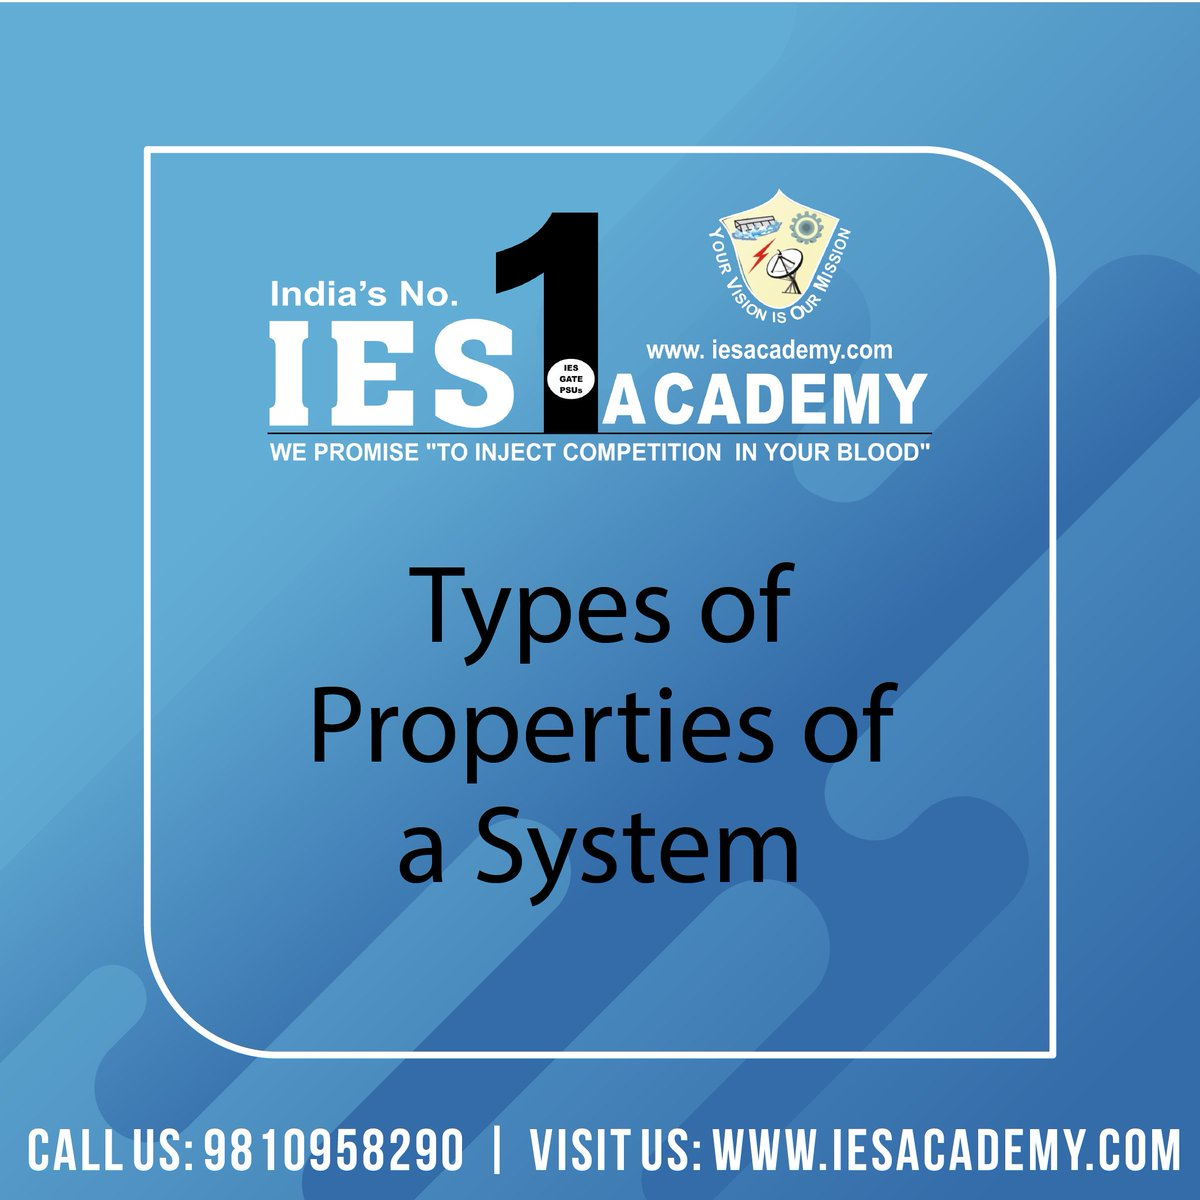 Types and Examples of the properties of a system  #IESAcademy #Gate2020 #Gate2021 #StudyNotes #techgadget #technologyblog #technologyisawesome #gadgetgoals #gadgetlife #engineerlife #mechanicalengineers #engeneering #manufacturing #collegestudentpic.twitter.com/fcK01ruUUw